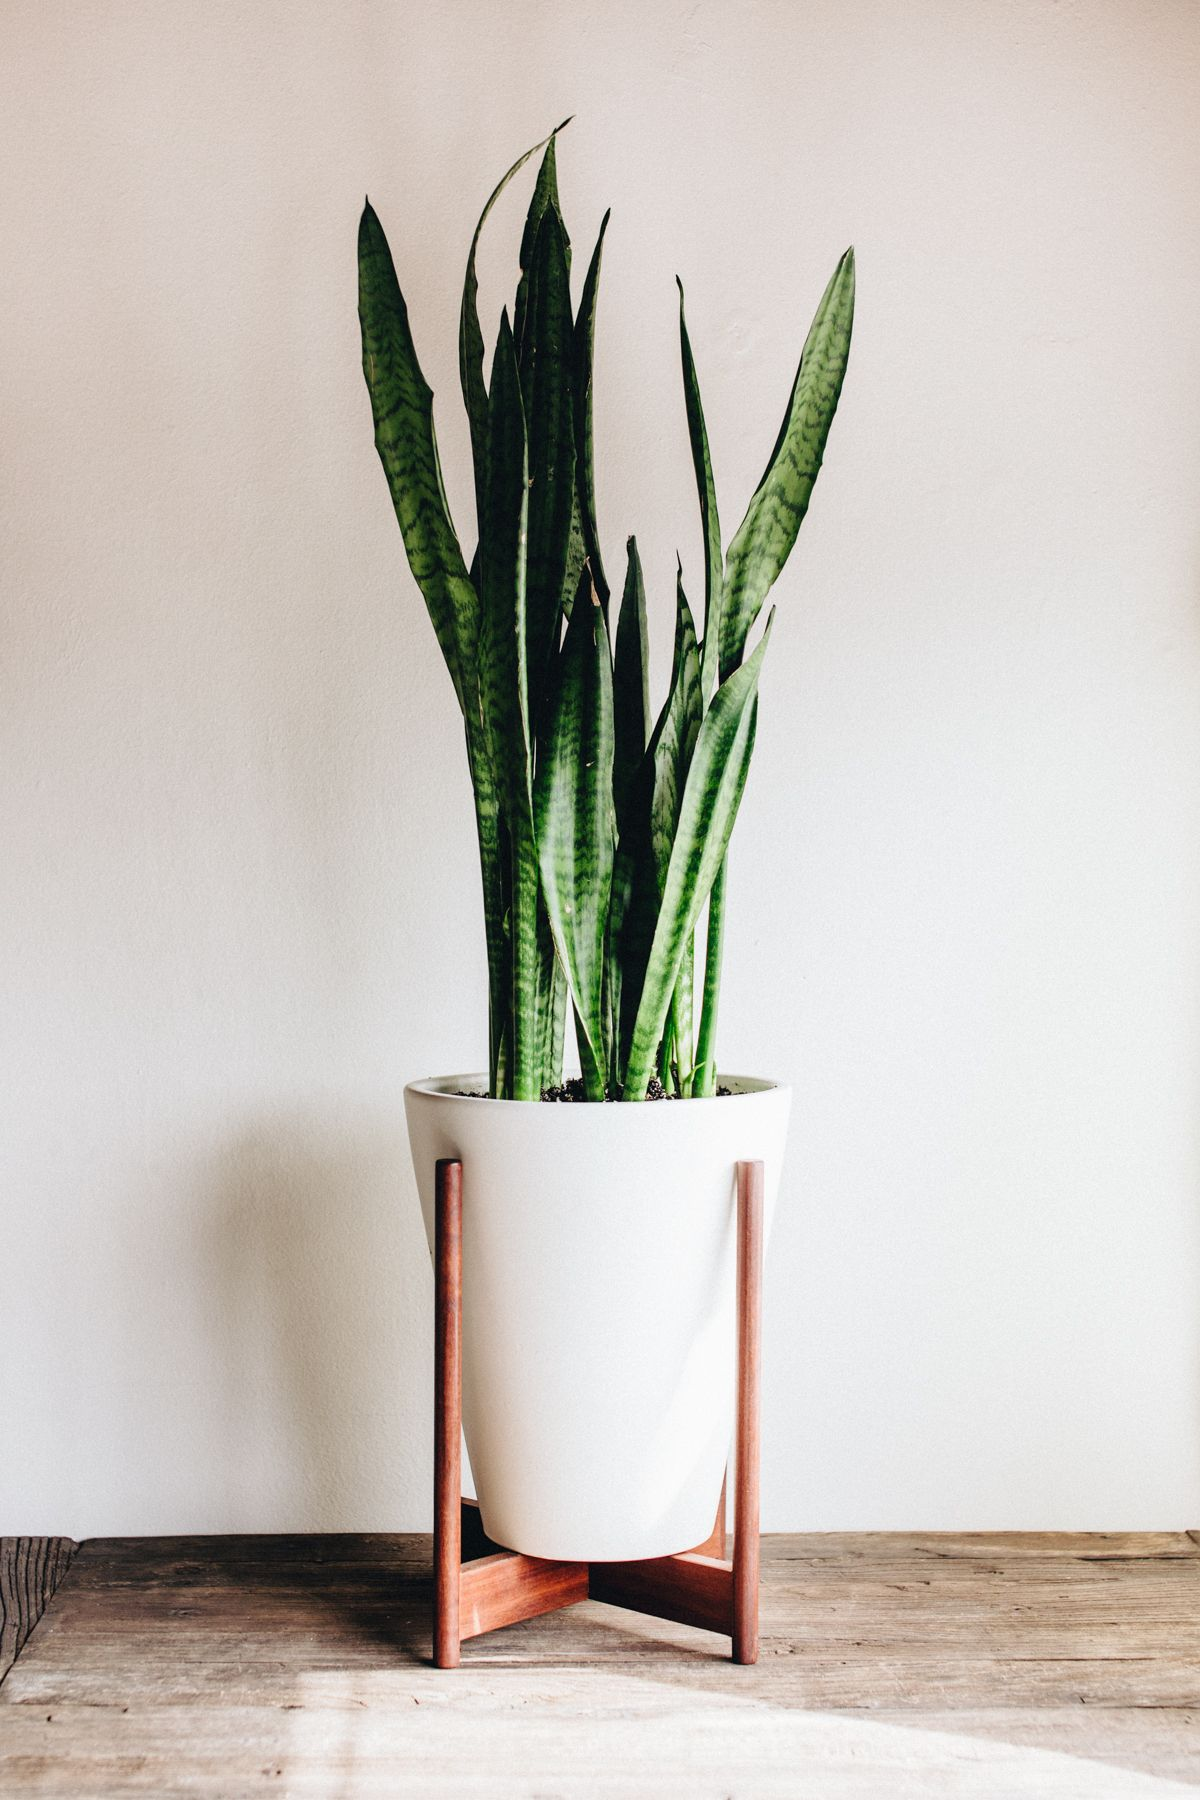 Tall Indoor Plants With Big Leaves Pin By Modernica On Case Study Ceramics Indoor Plants